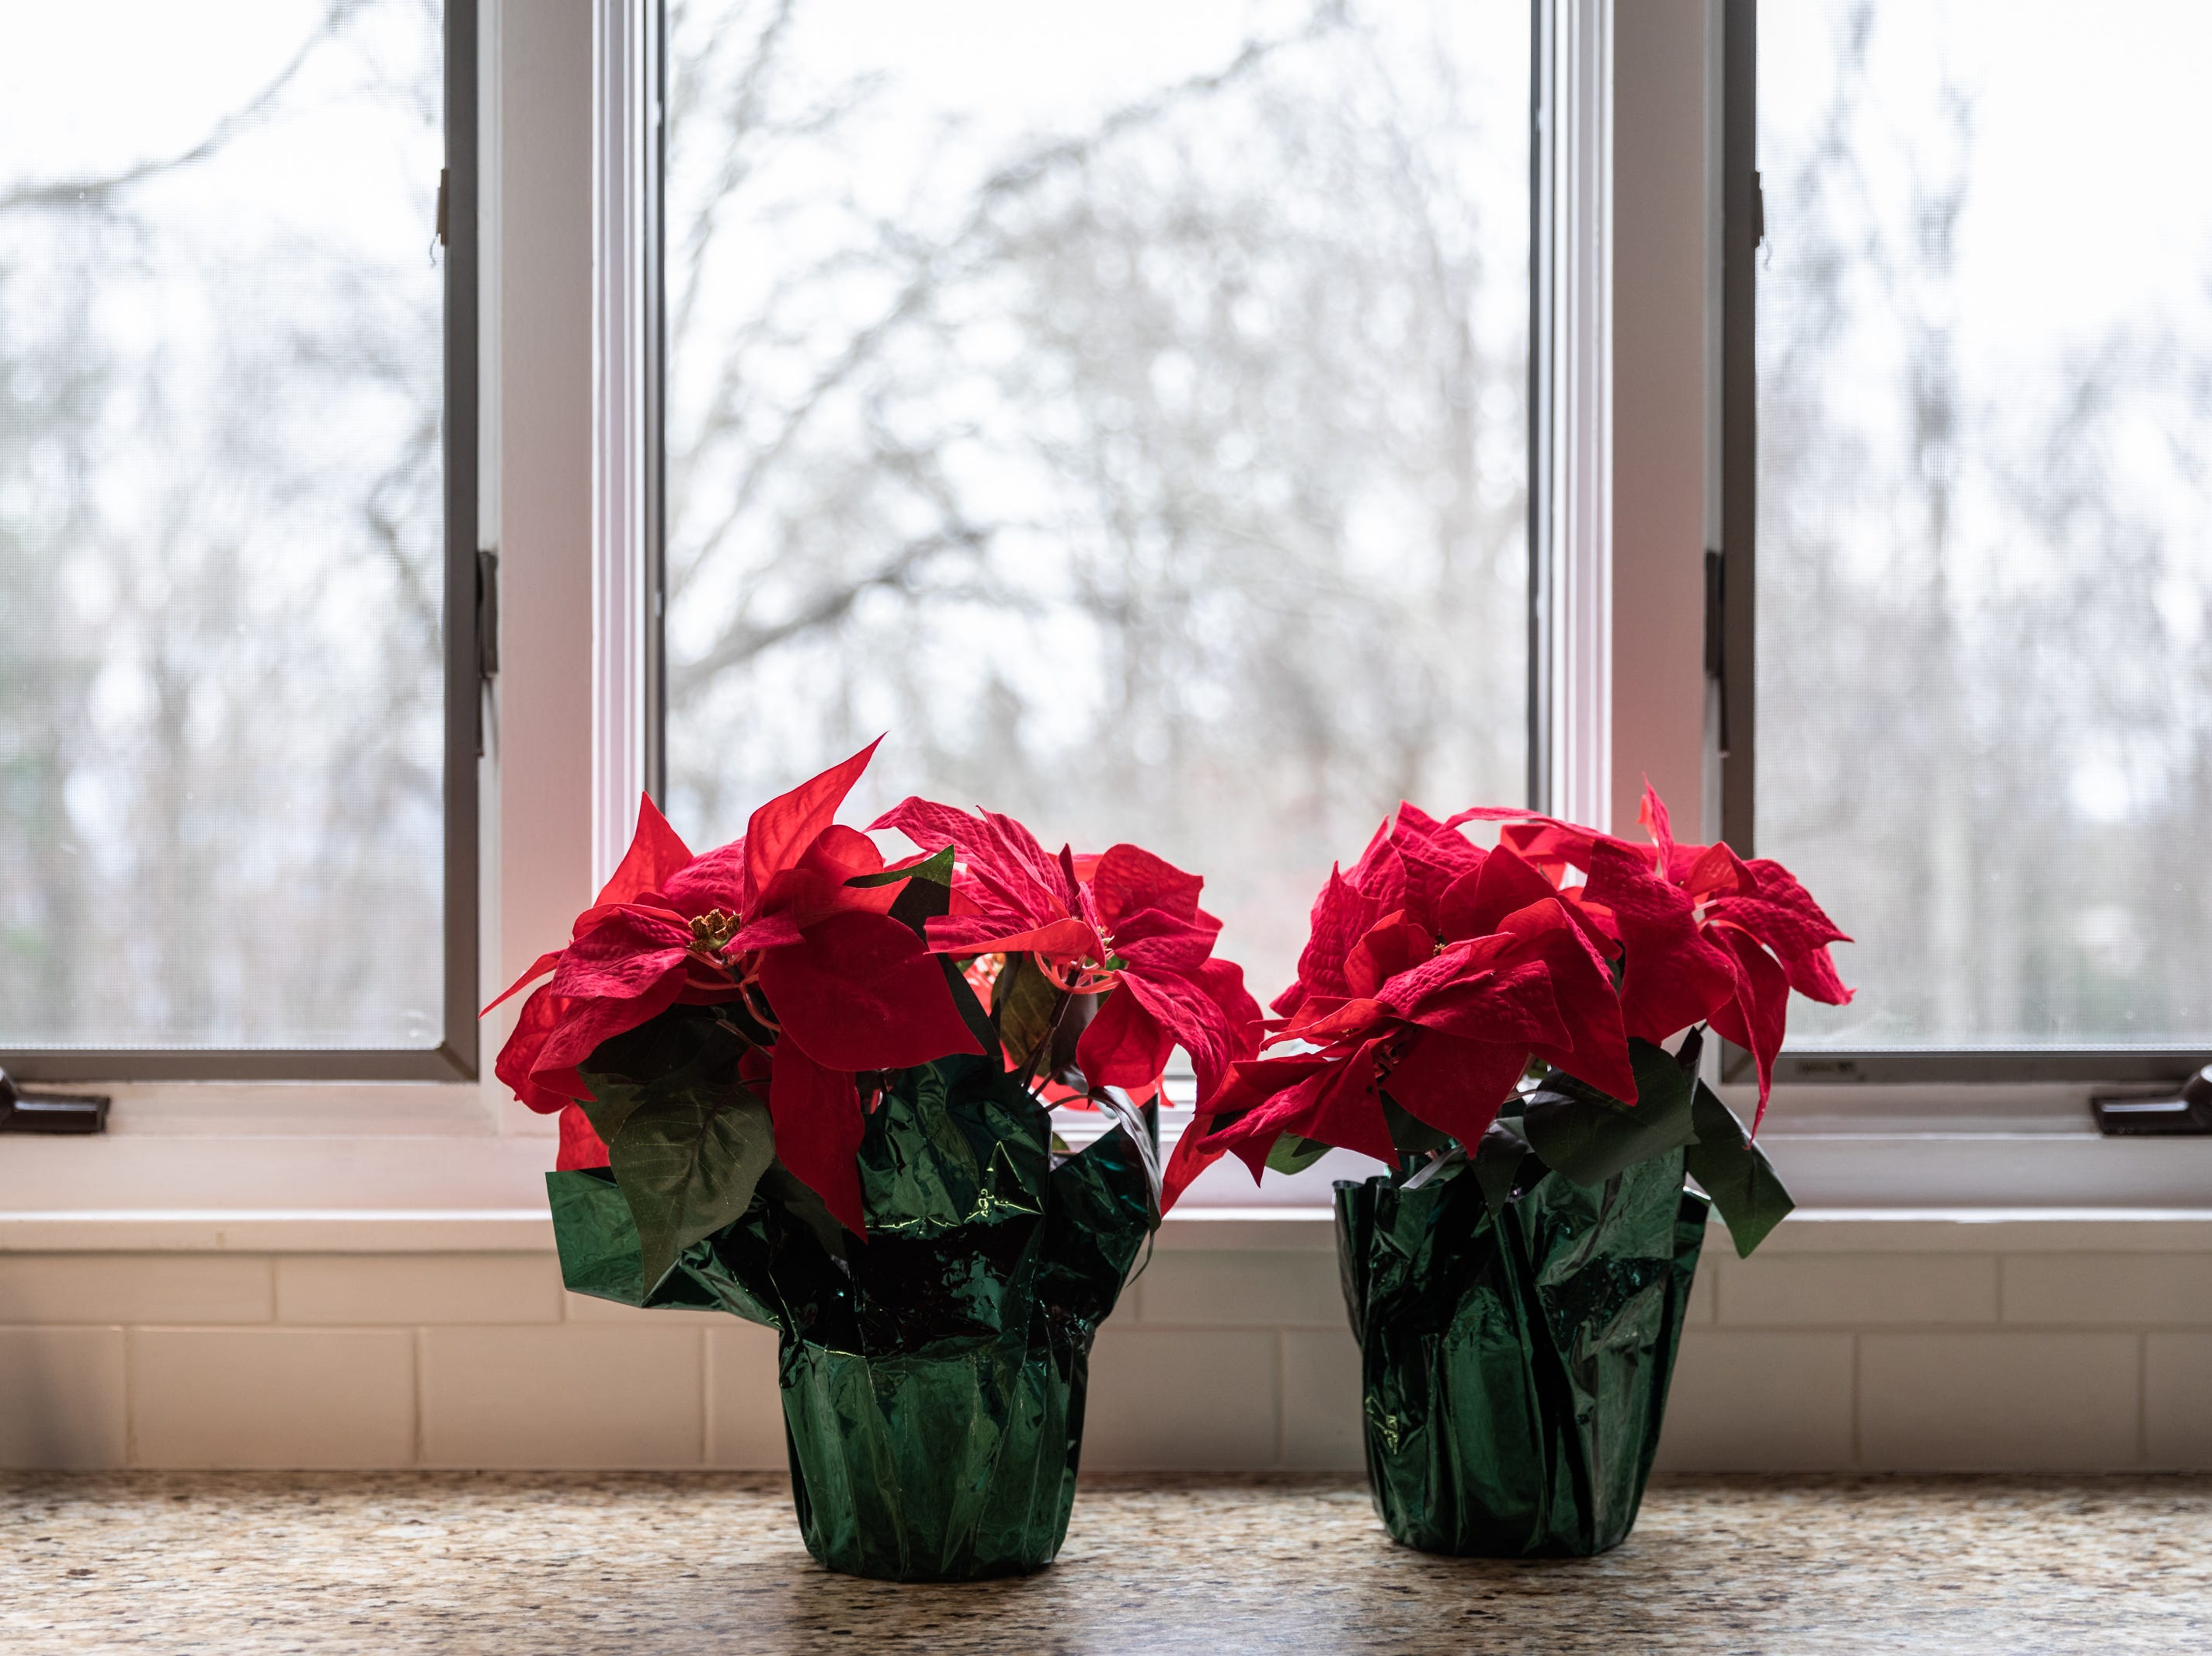 Poinsettias in the kitchen of the Governor's Western Residence on Patton Mountain Road in Asheville.